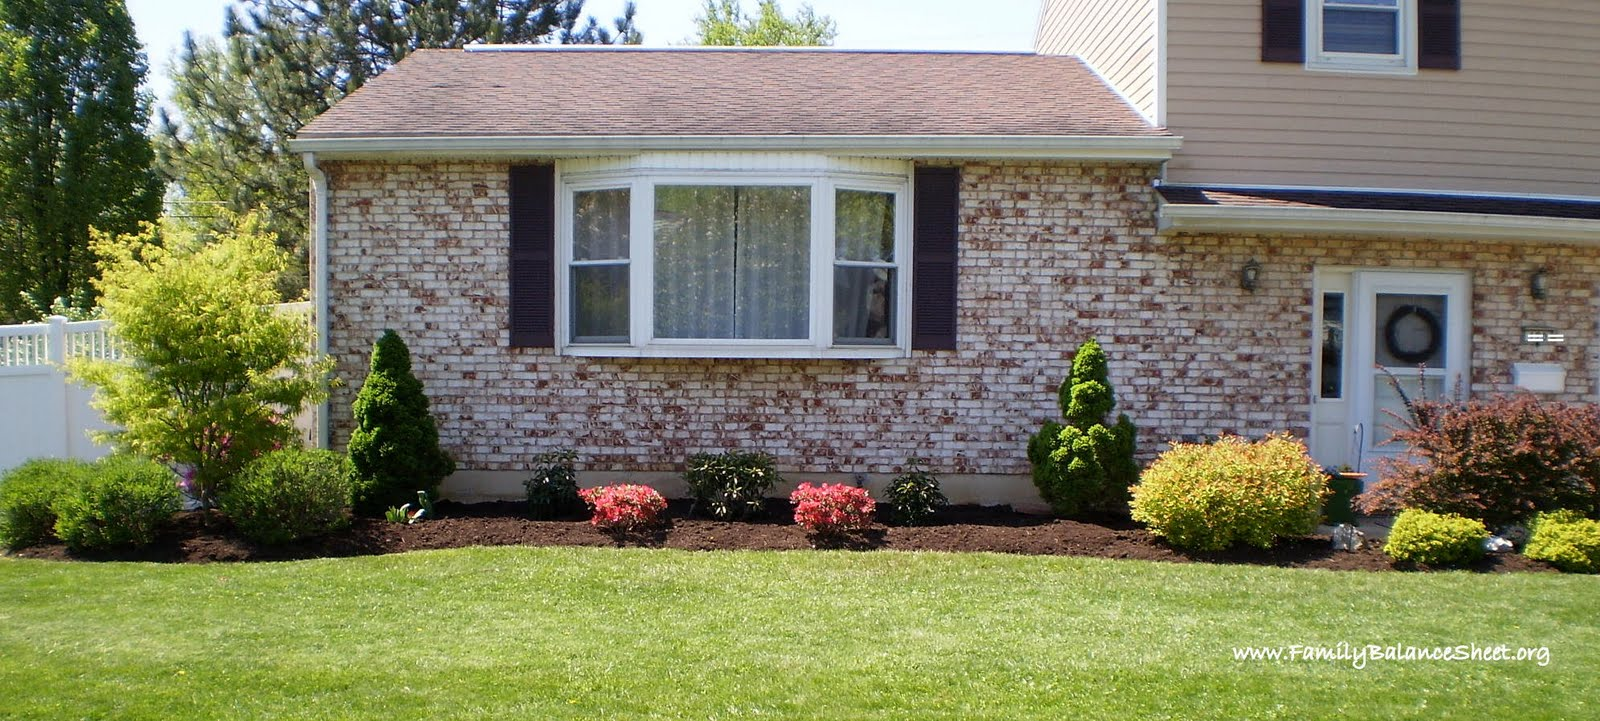 15 tips to help you design your front yard save money too for Front garden design plans